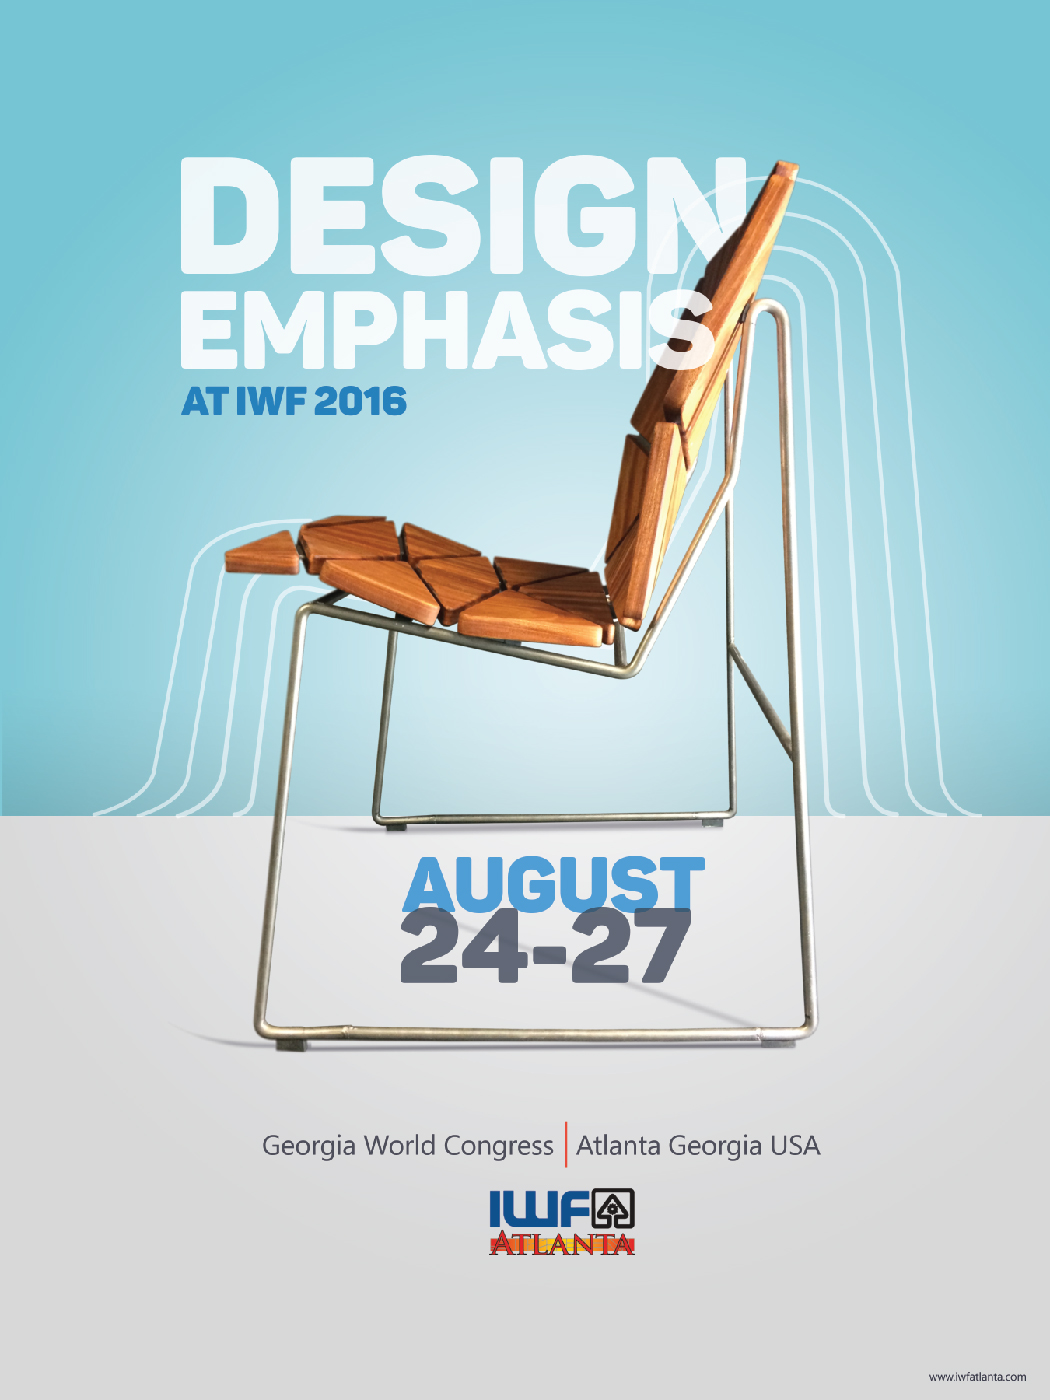 Modern, Bold, Woodworking Poster Design For A Company In United States |  Design 7365330